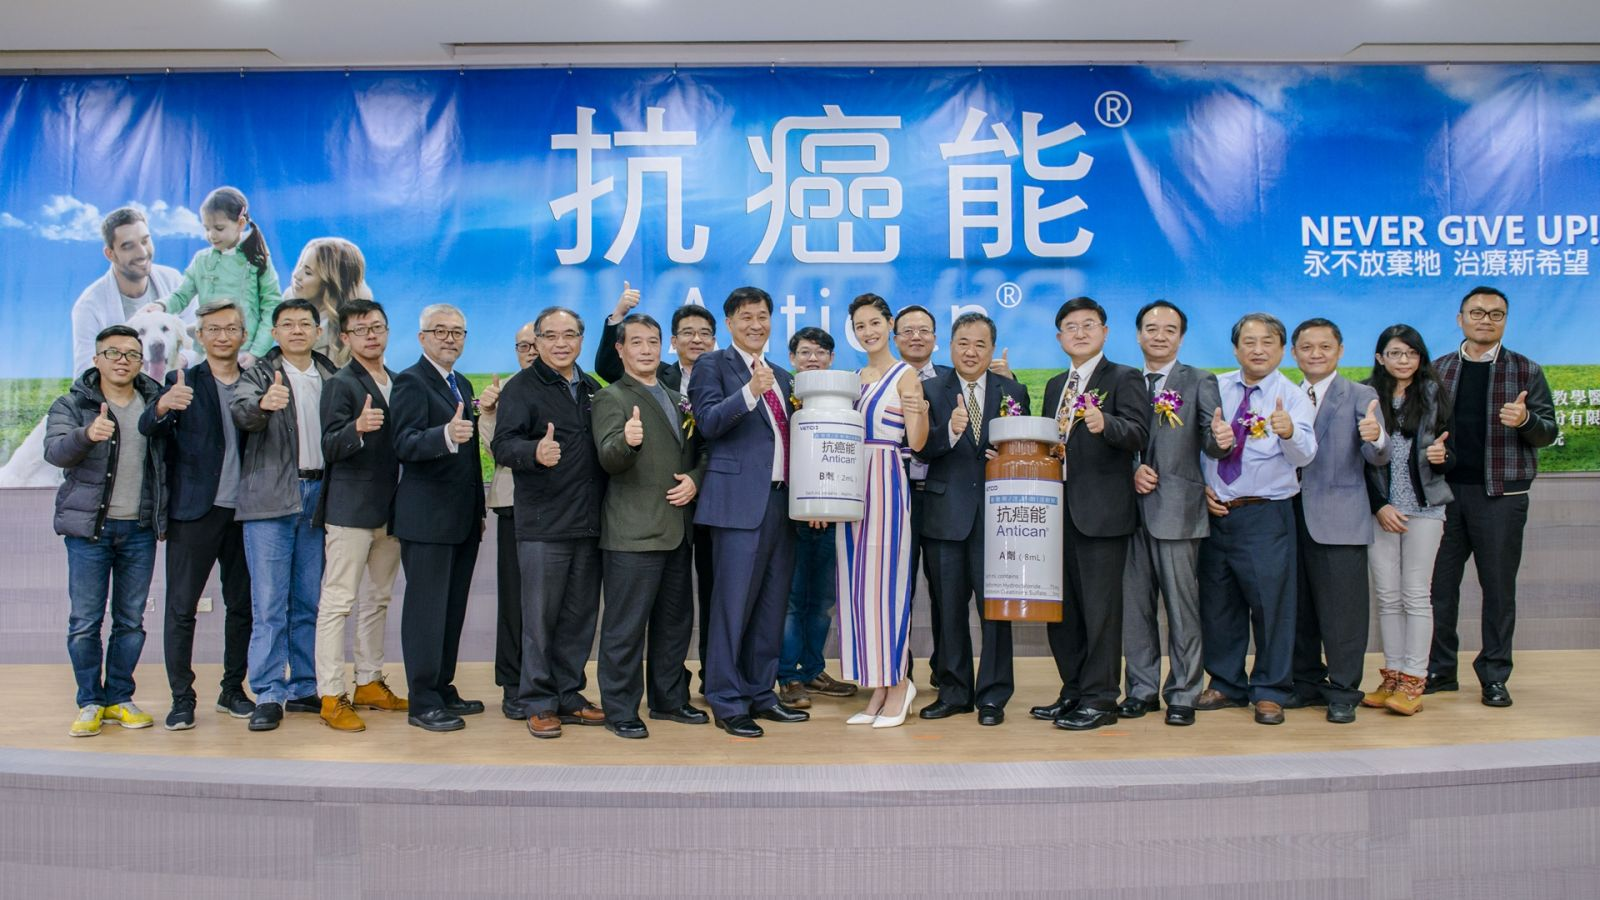 pet cancer treatment - Antican Market Launch Press Conference in Taiwan